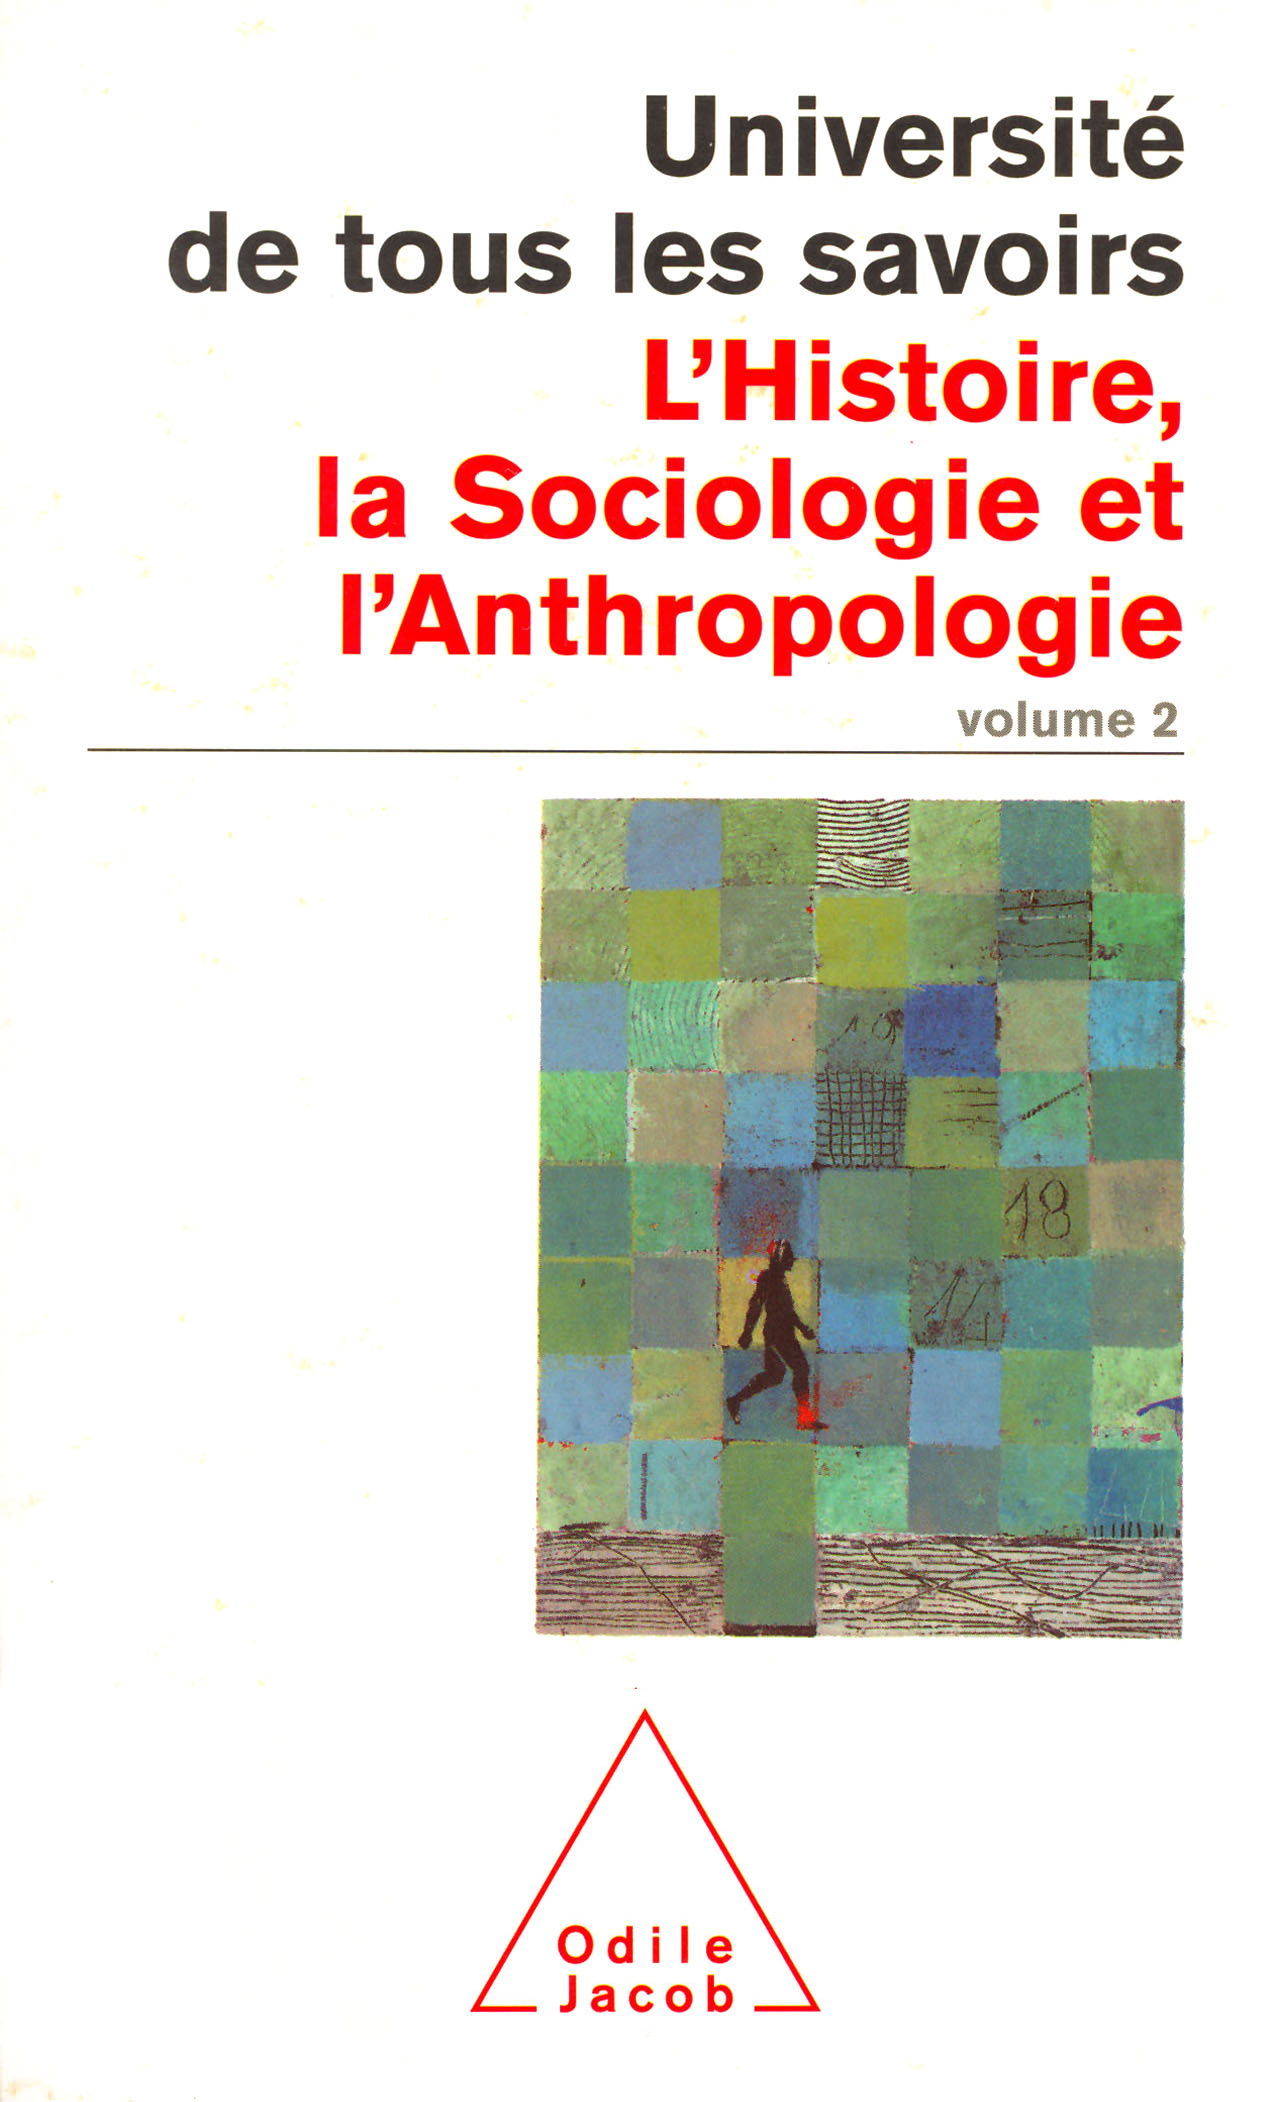 Volume 2: History, Sociology and Anthropology